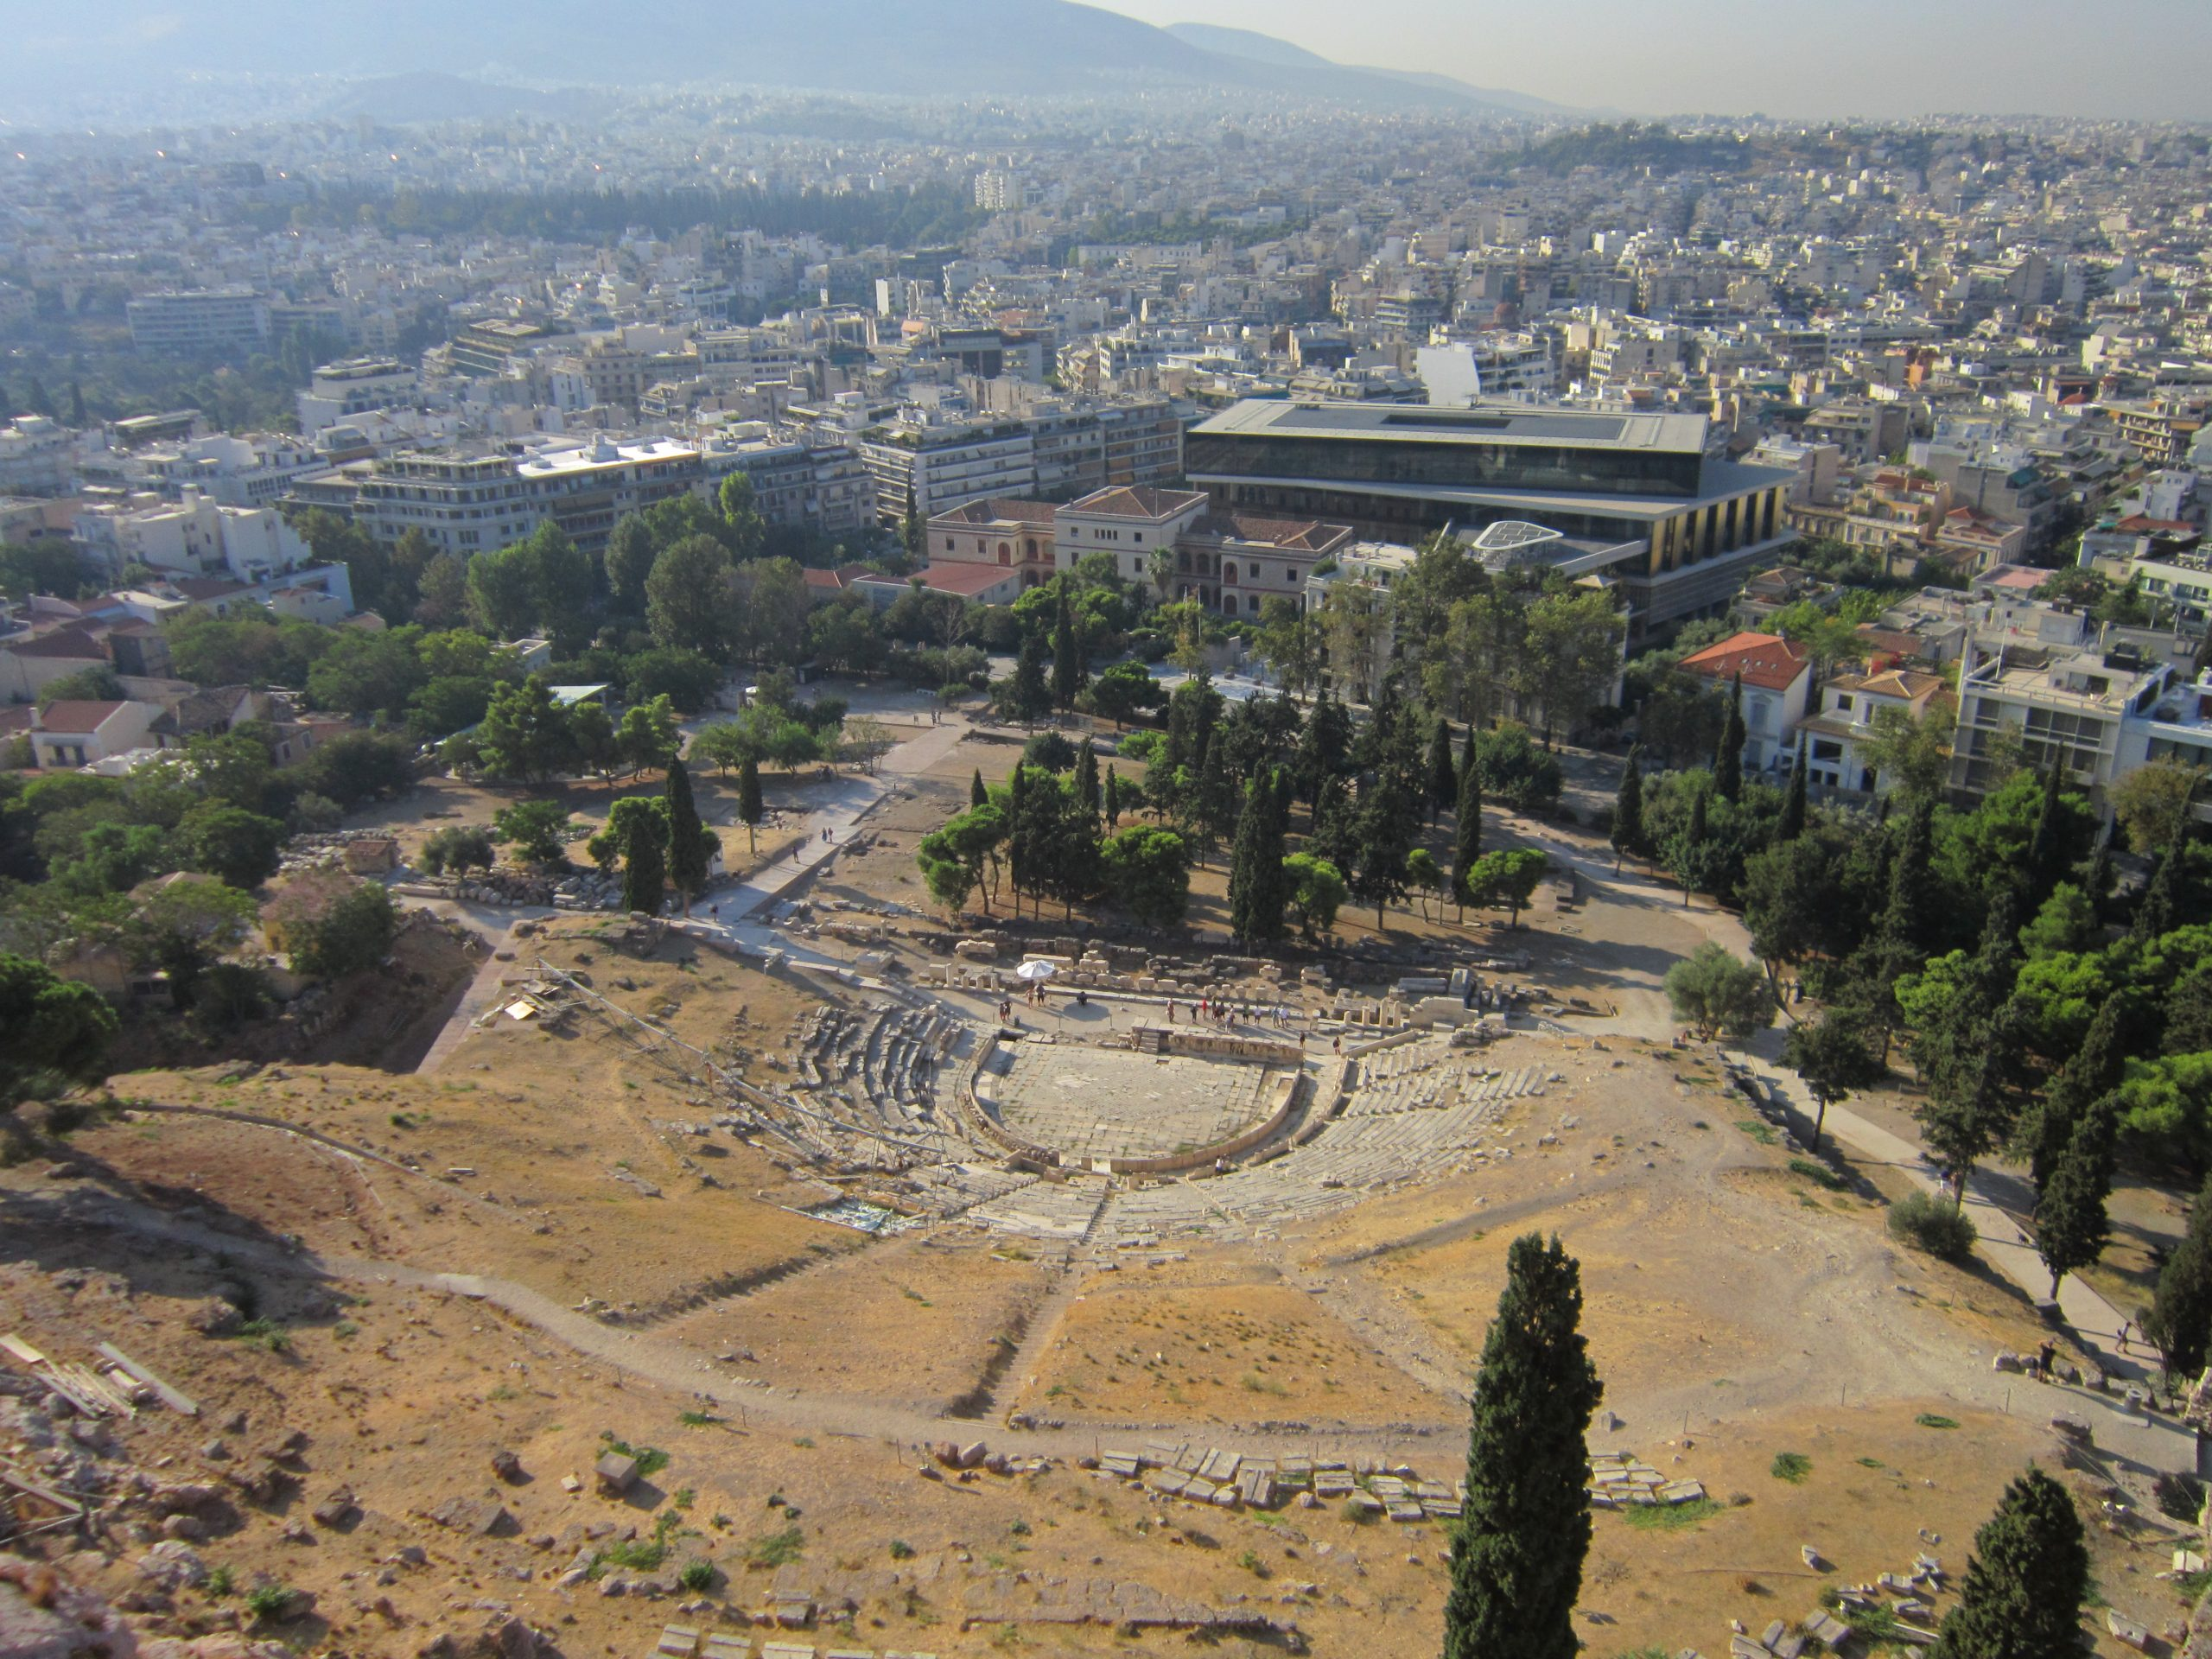 Looking over the top of  The Theatre of Dionysus with the city spread out beyond.